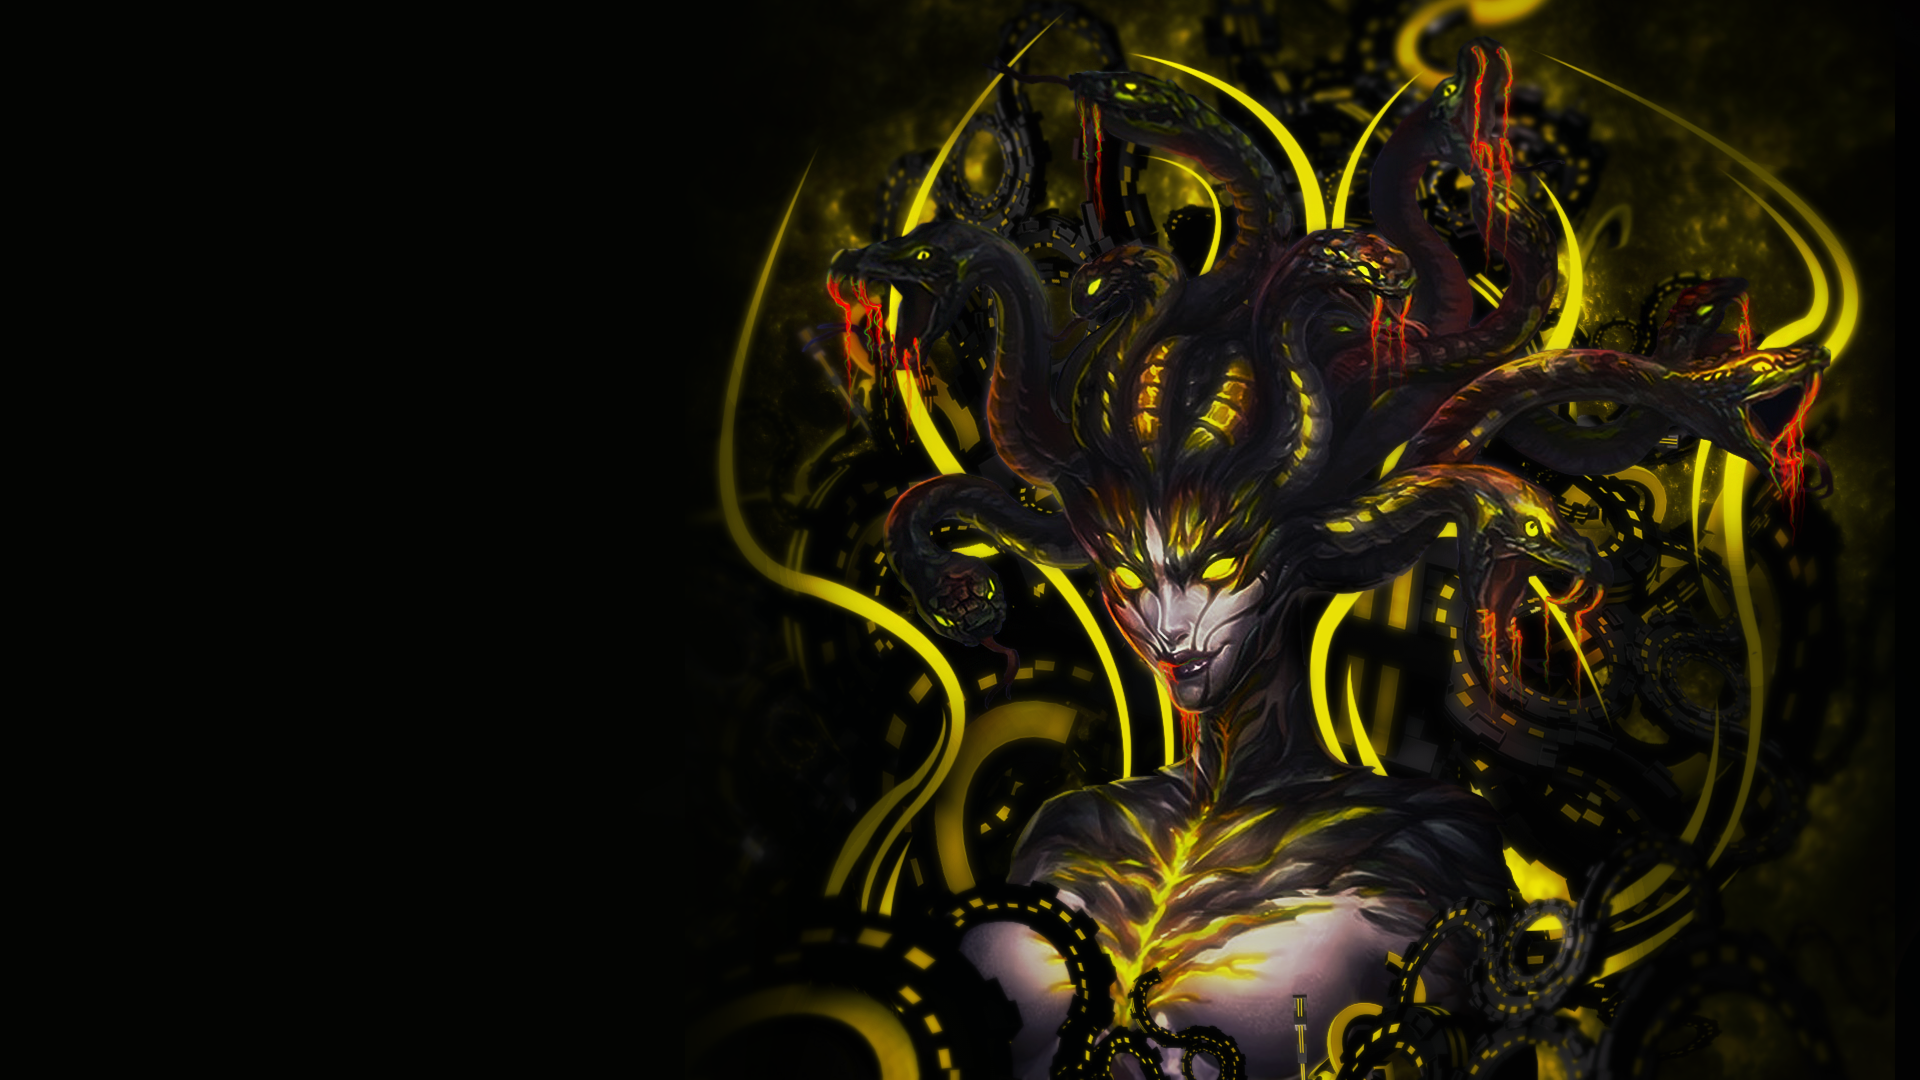 medusa_re_awakening_1920x1080_fhd_by_iam